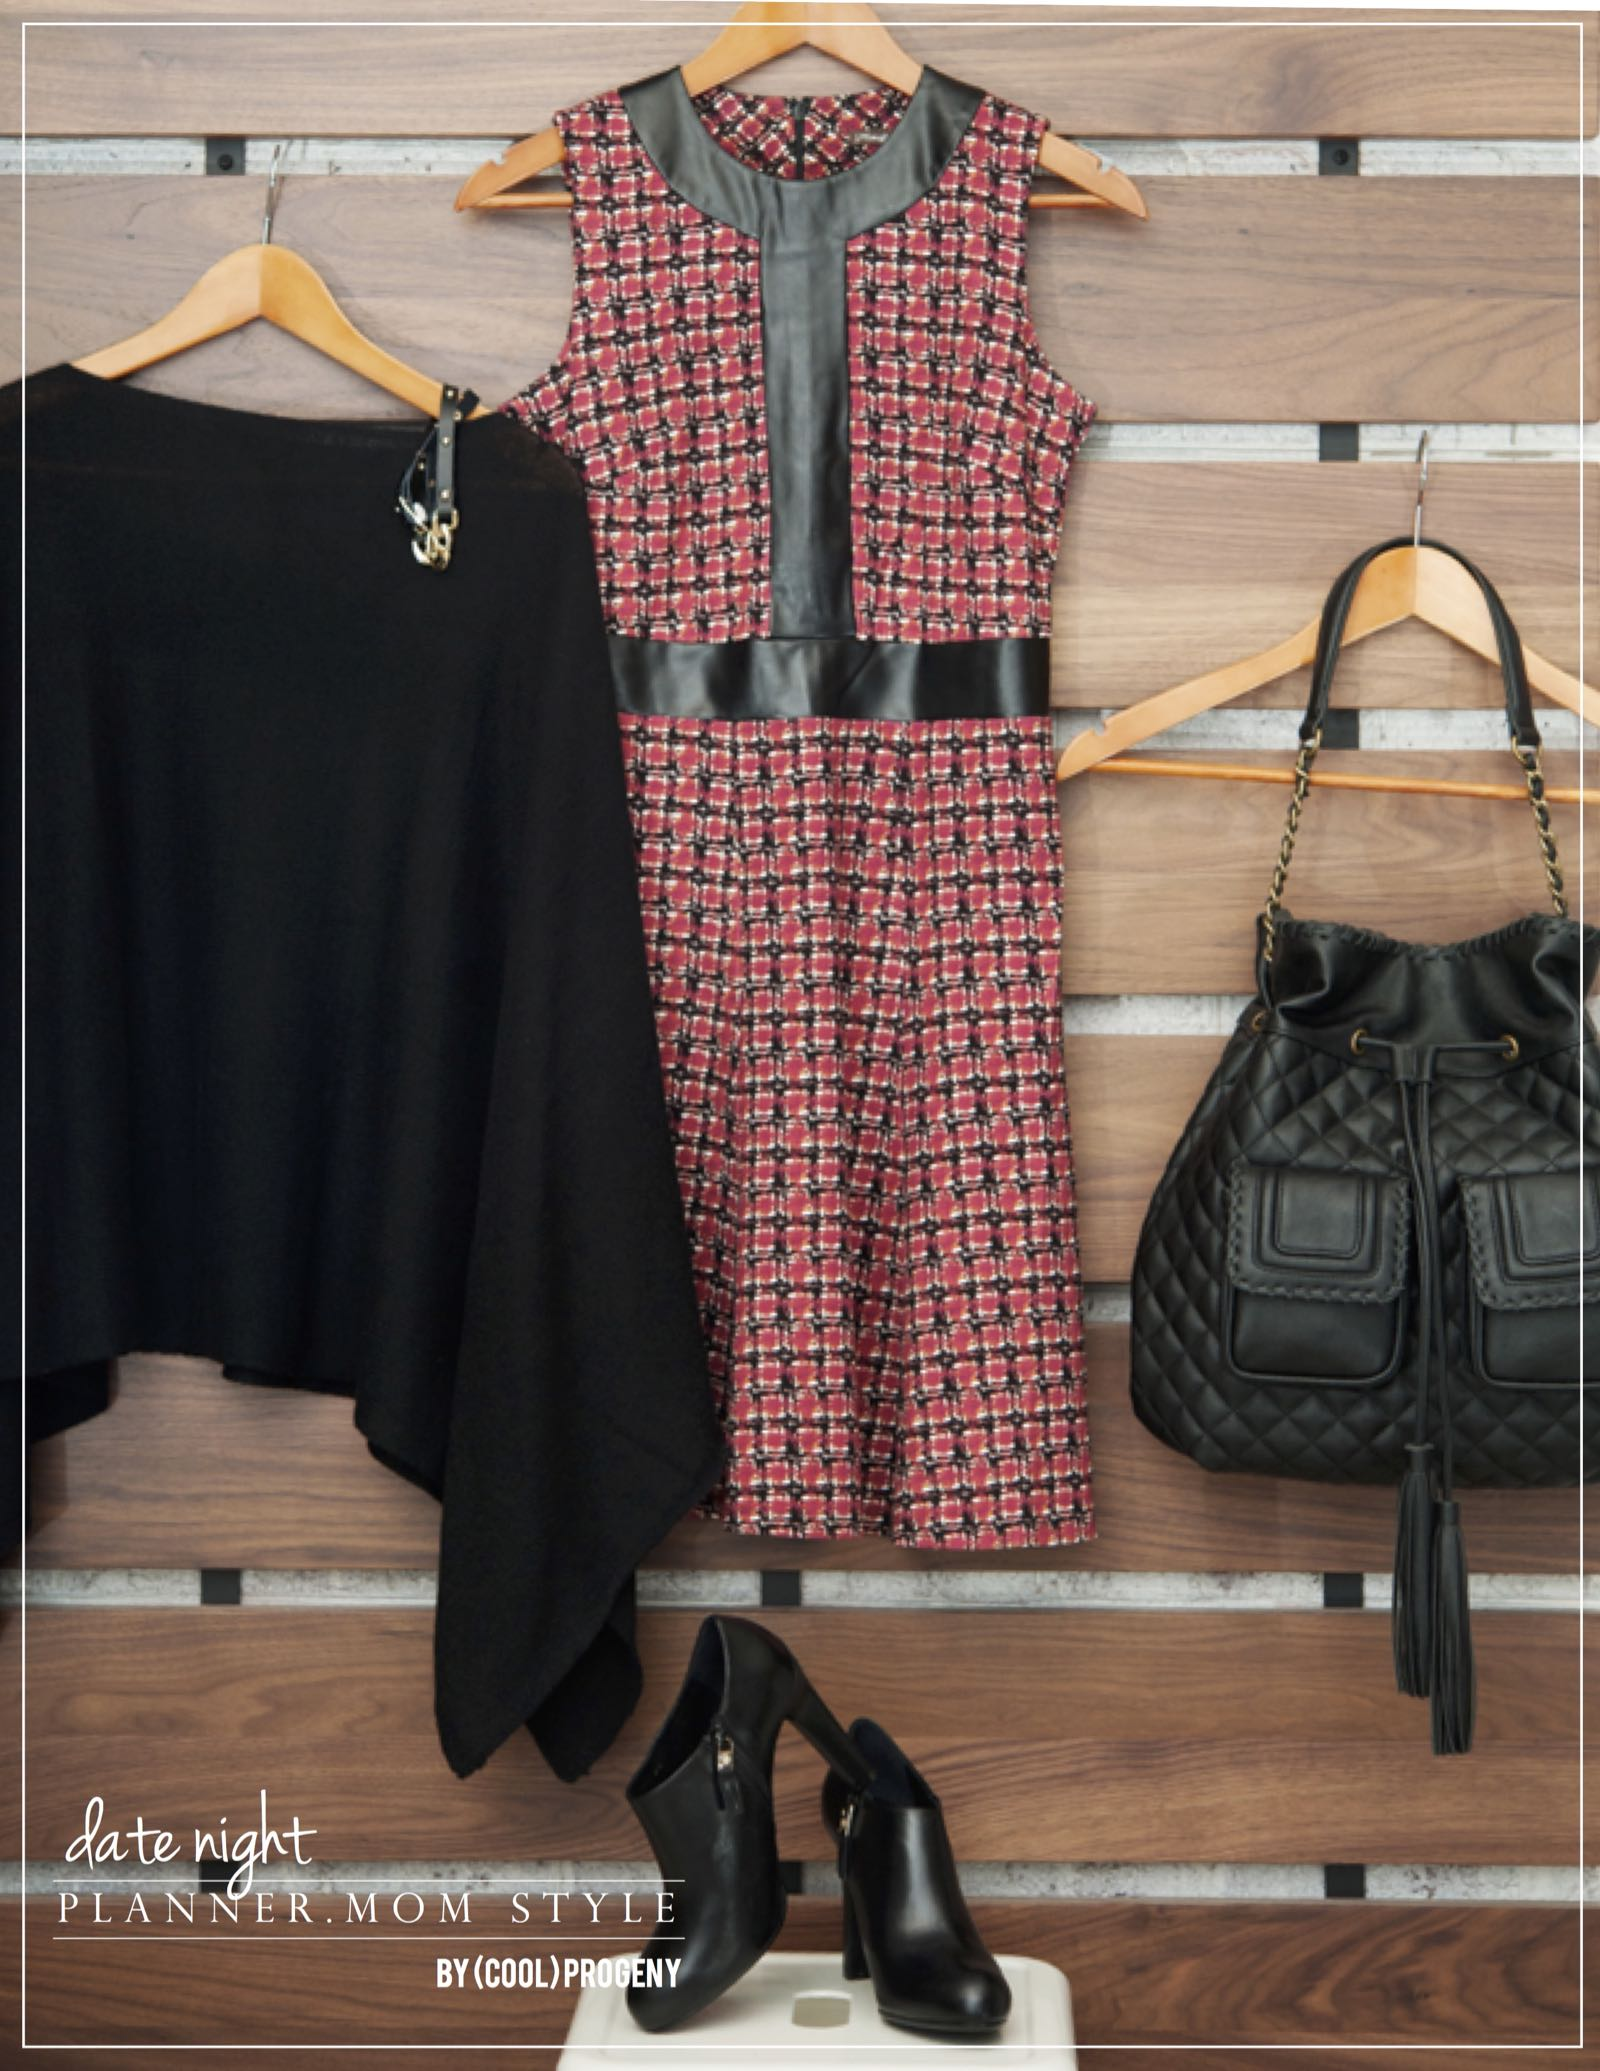 fall style mom planner edition - date night